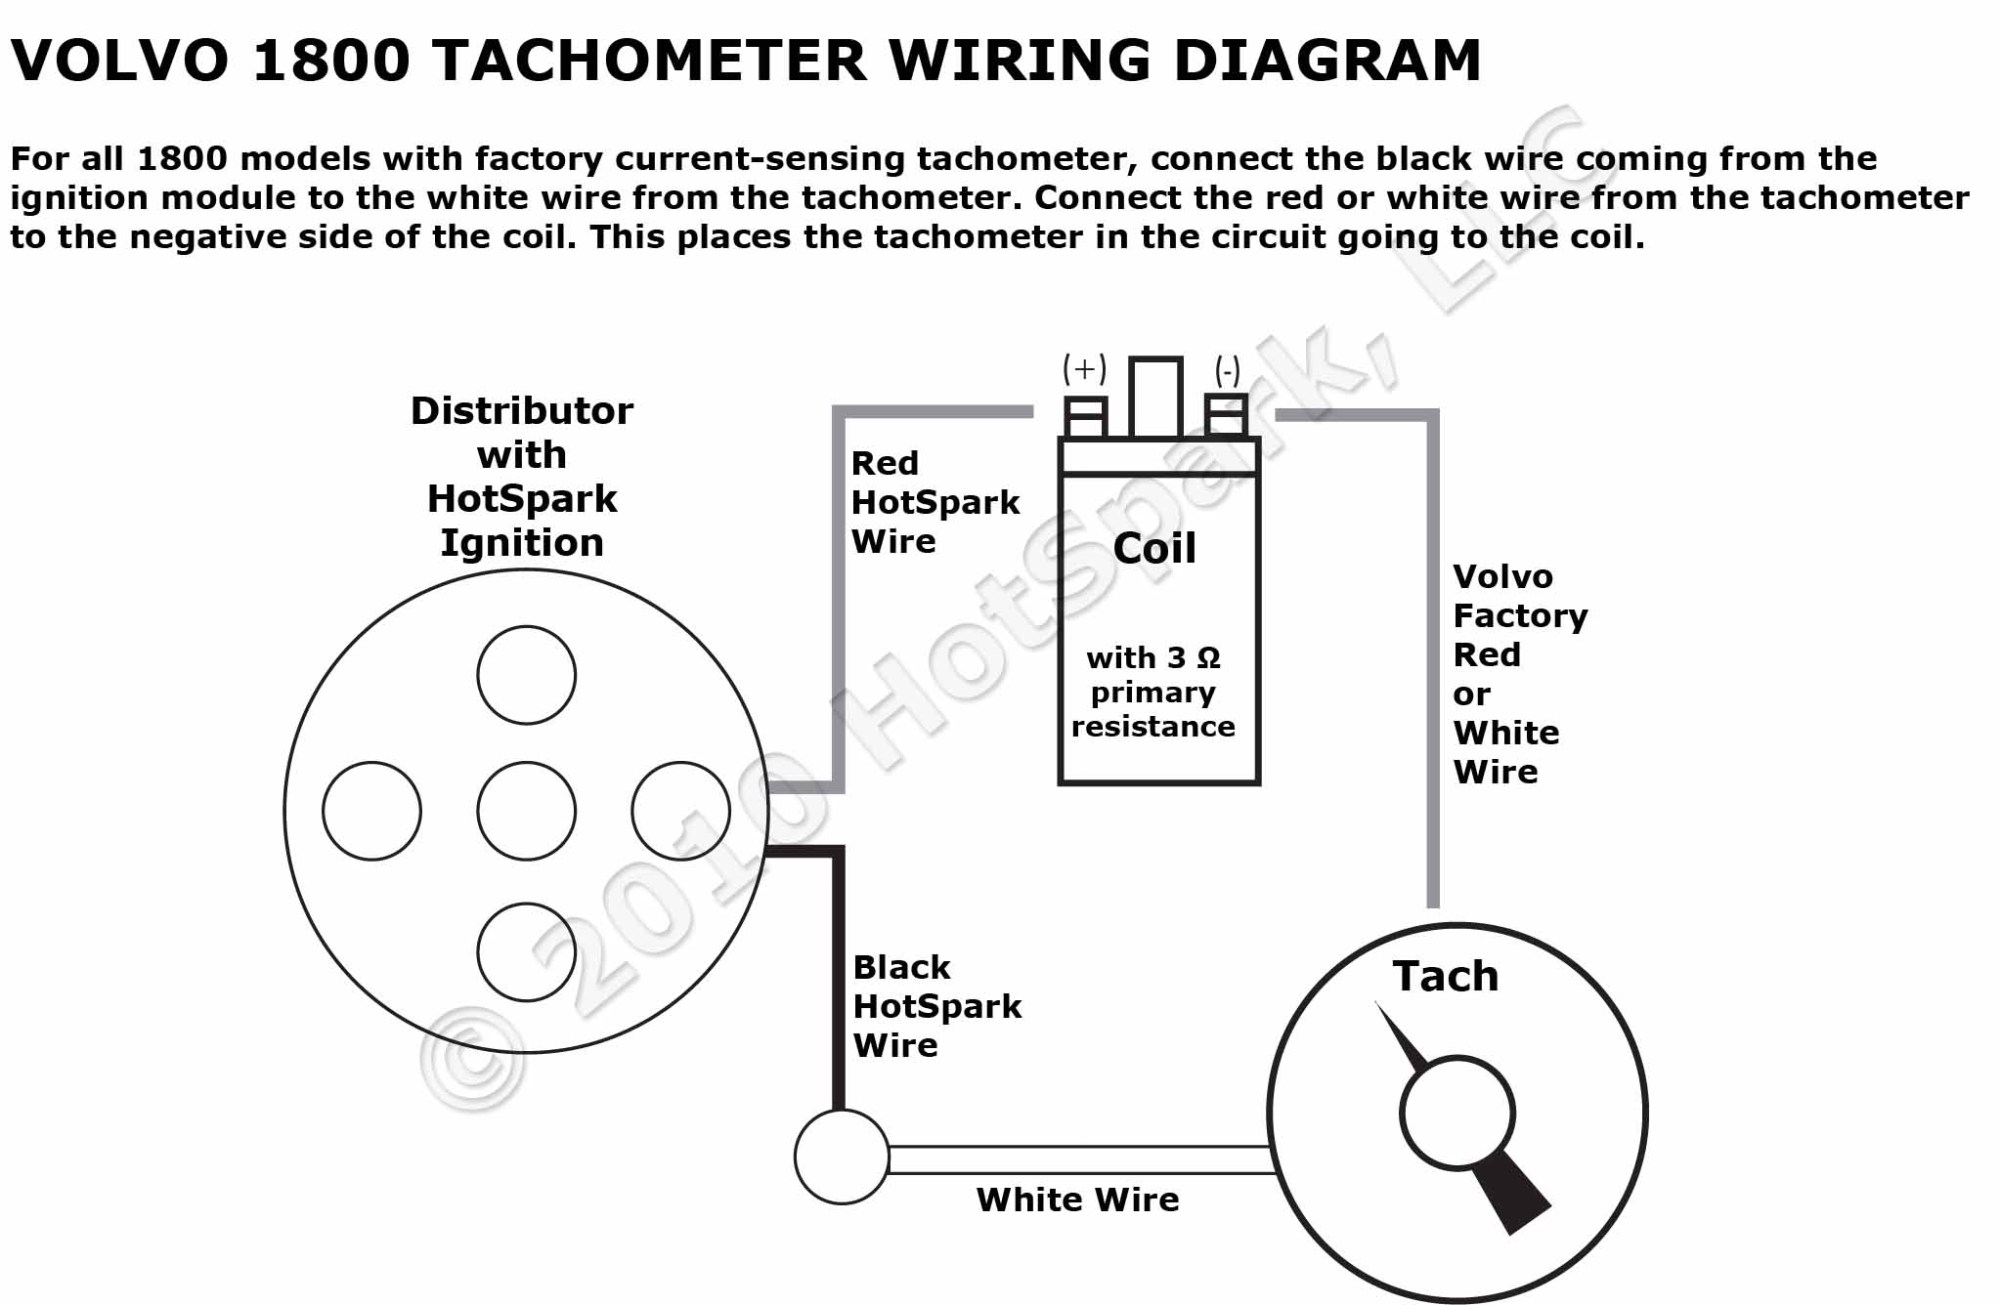 hight resolution of volvo 1800 tachometer wiring diagram with hotspark ignition medallion tachometer wiring diagram tachometer wiring diagram